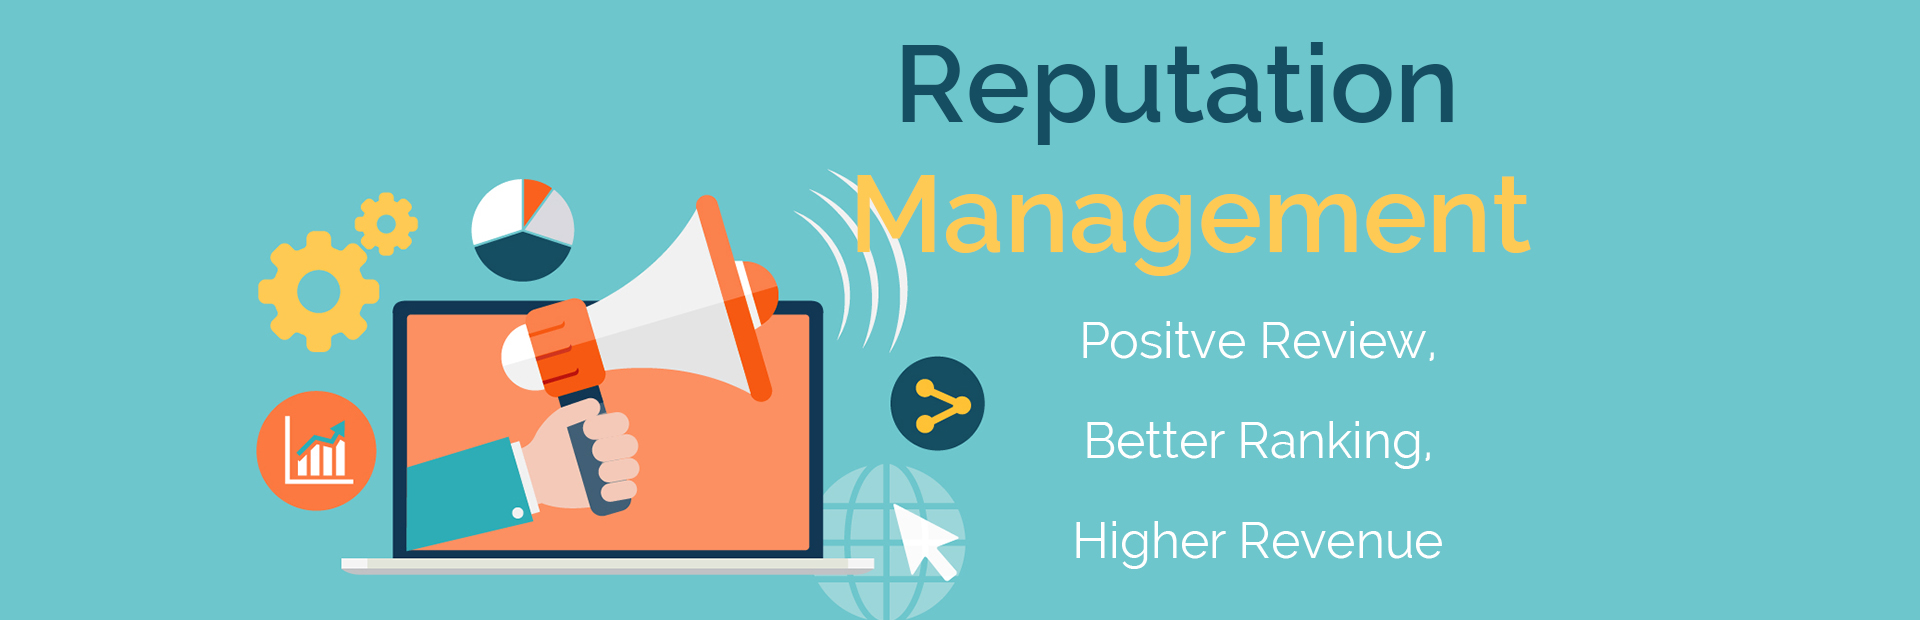 how to do reputation-management